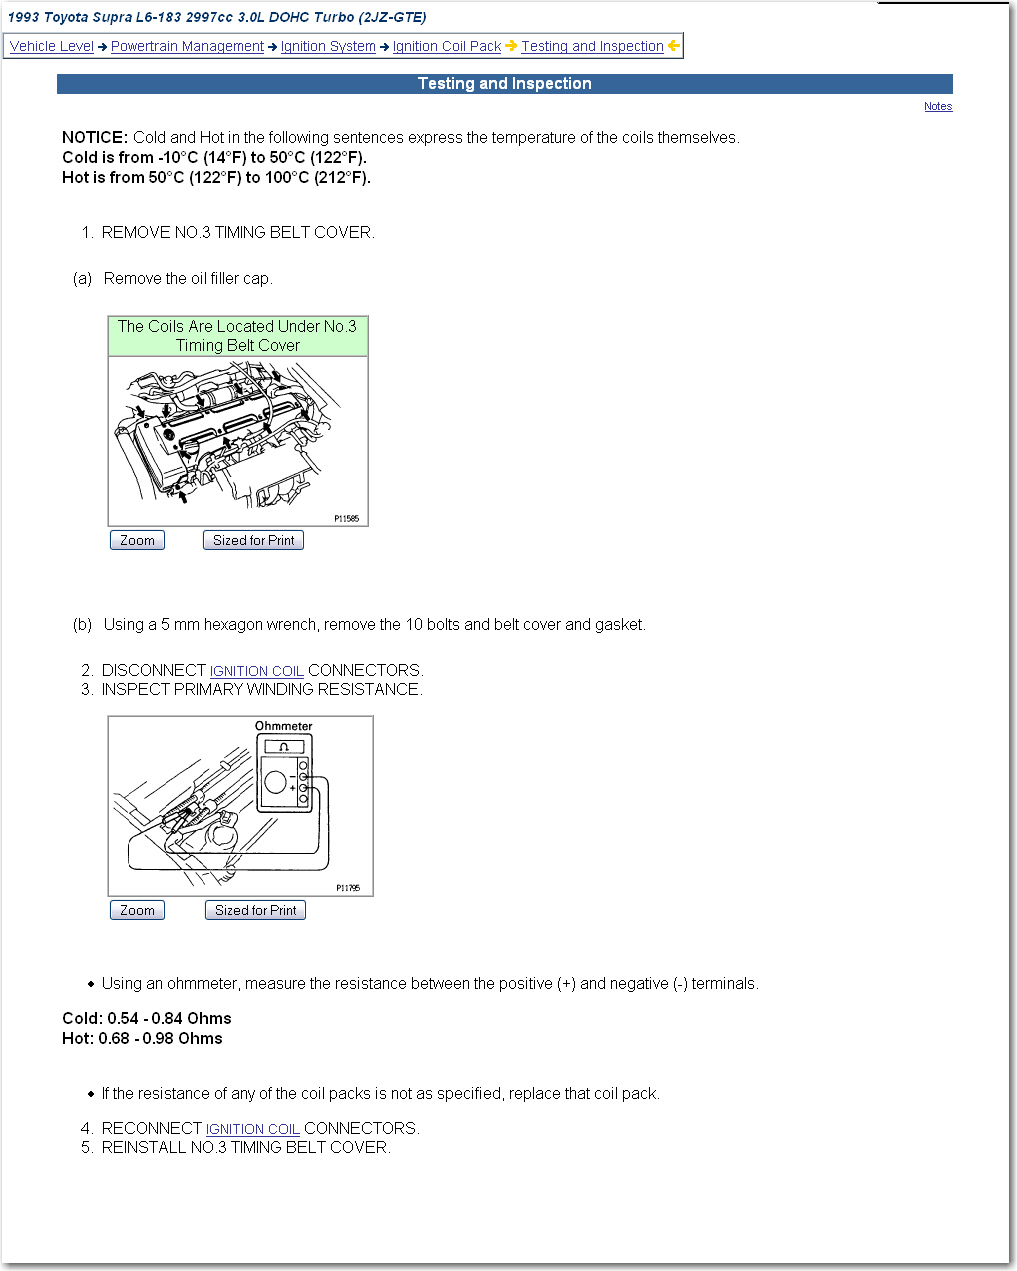 Have A Coil Pack Firing Issue 2 And 5 No Signalpacks Are 1994 Eagle Summit Wiring Diagram Click Here For Diagrams I Hope This Helps If You Any More Questions Or Need Please Dont Hesisitate To Ask